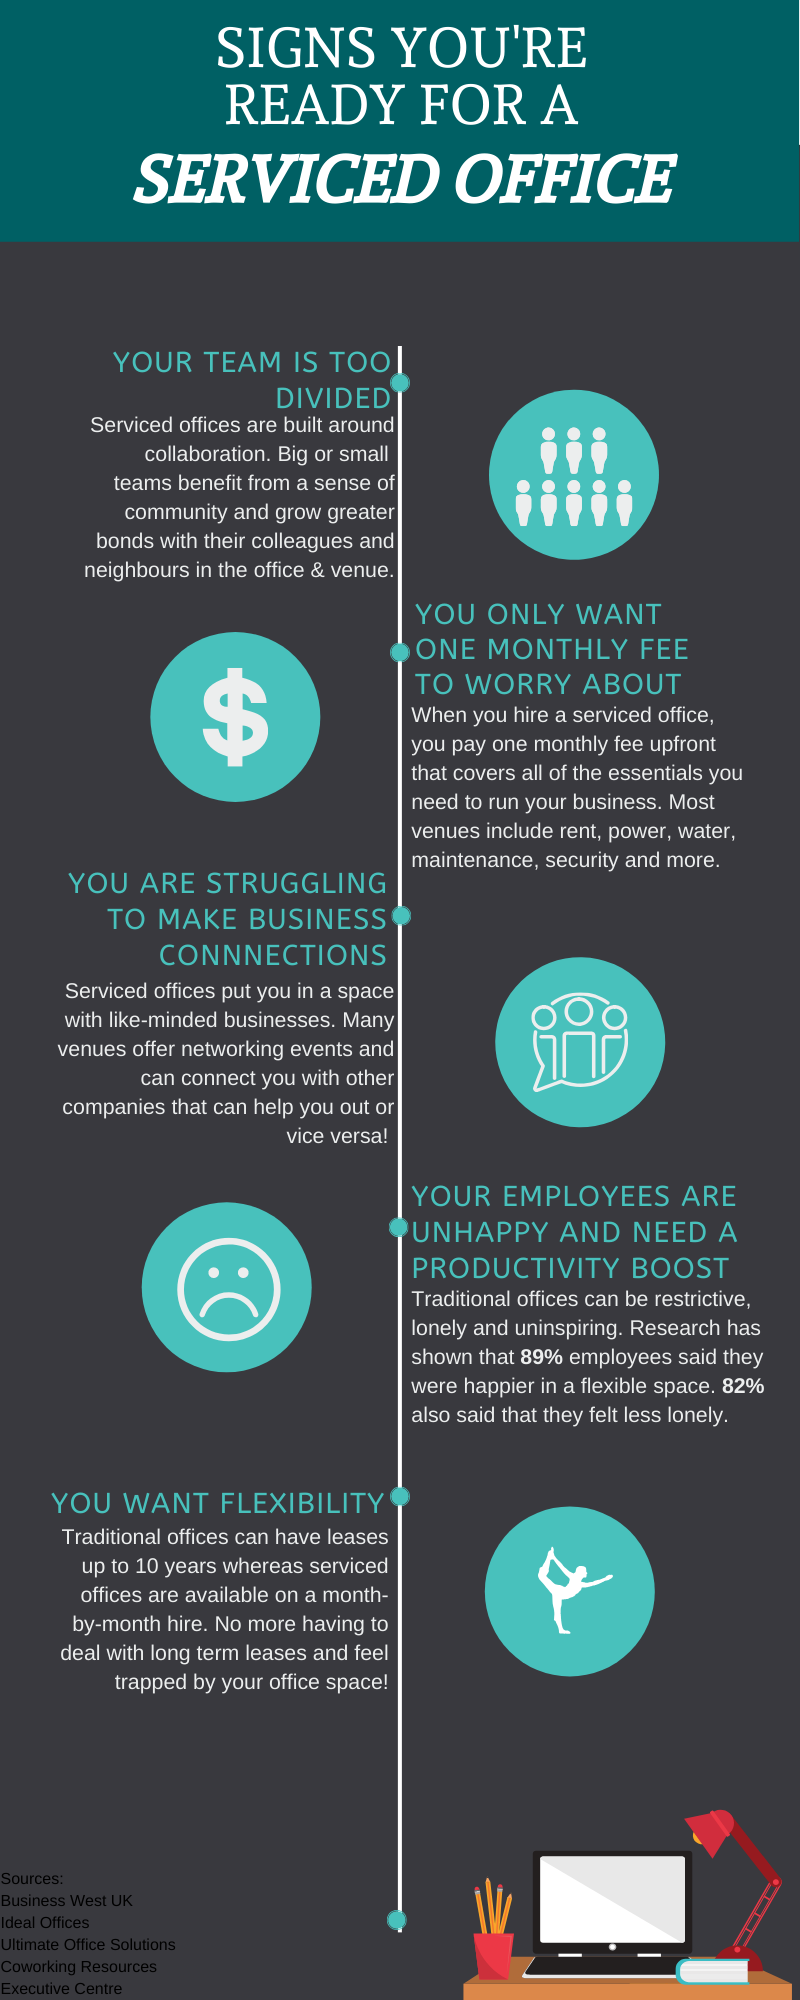 nfographic - Signs You're Ready for a Serviced Office